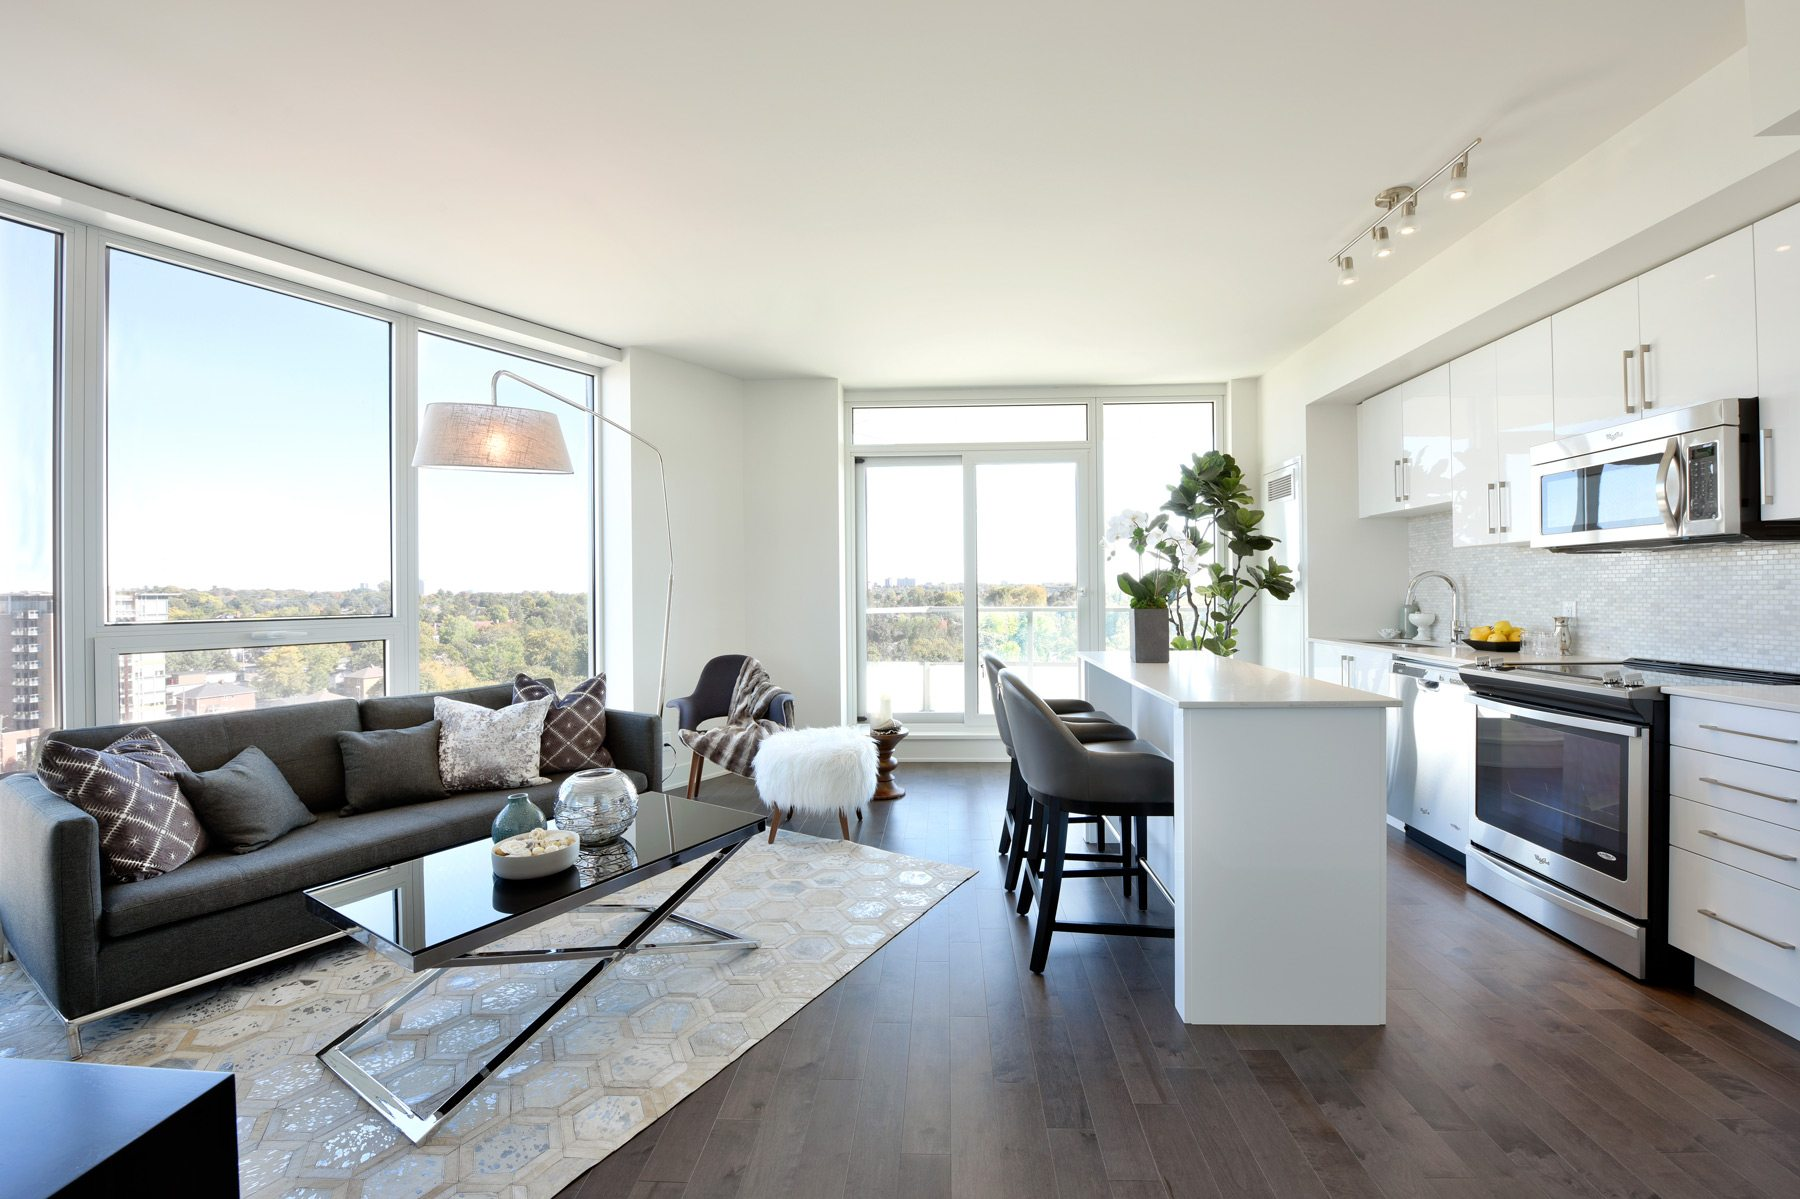 Minto UpperWest's Broadview suite, a one bedroom suite with a view over the tree-lined streets of Westboro